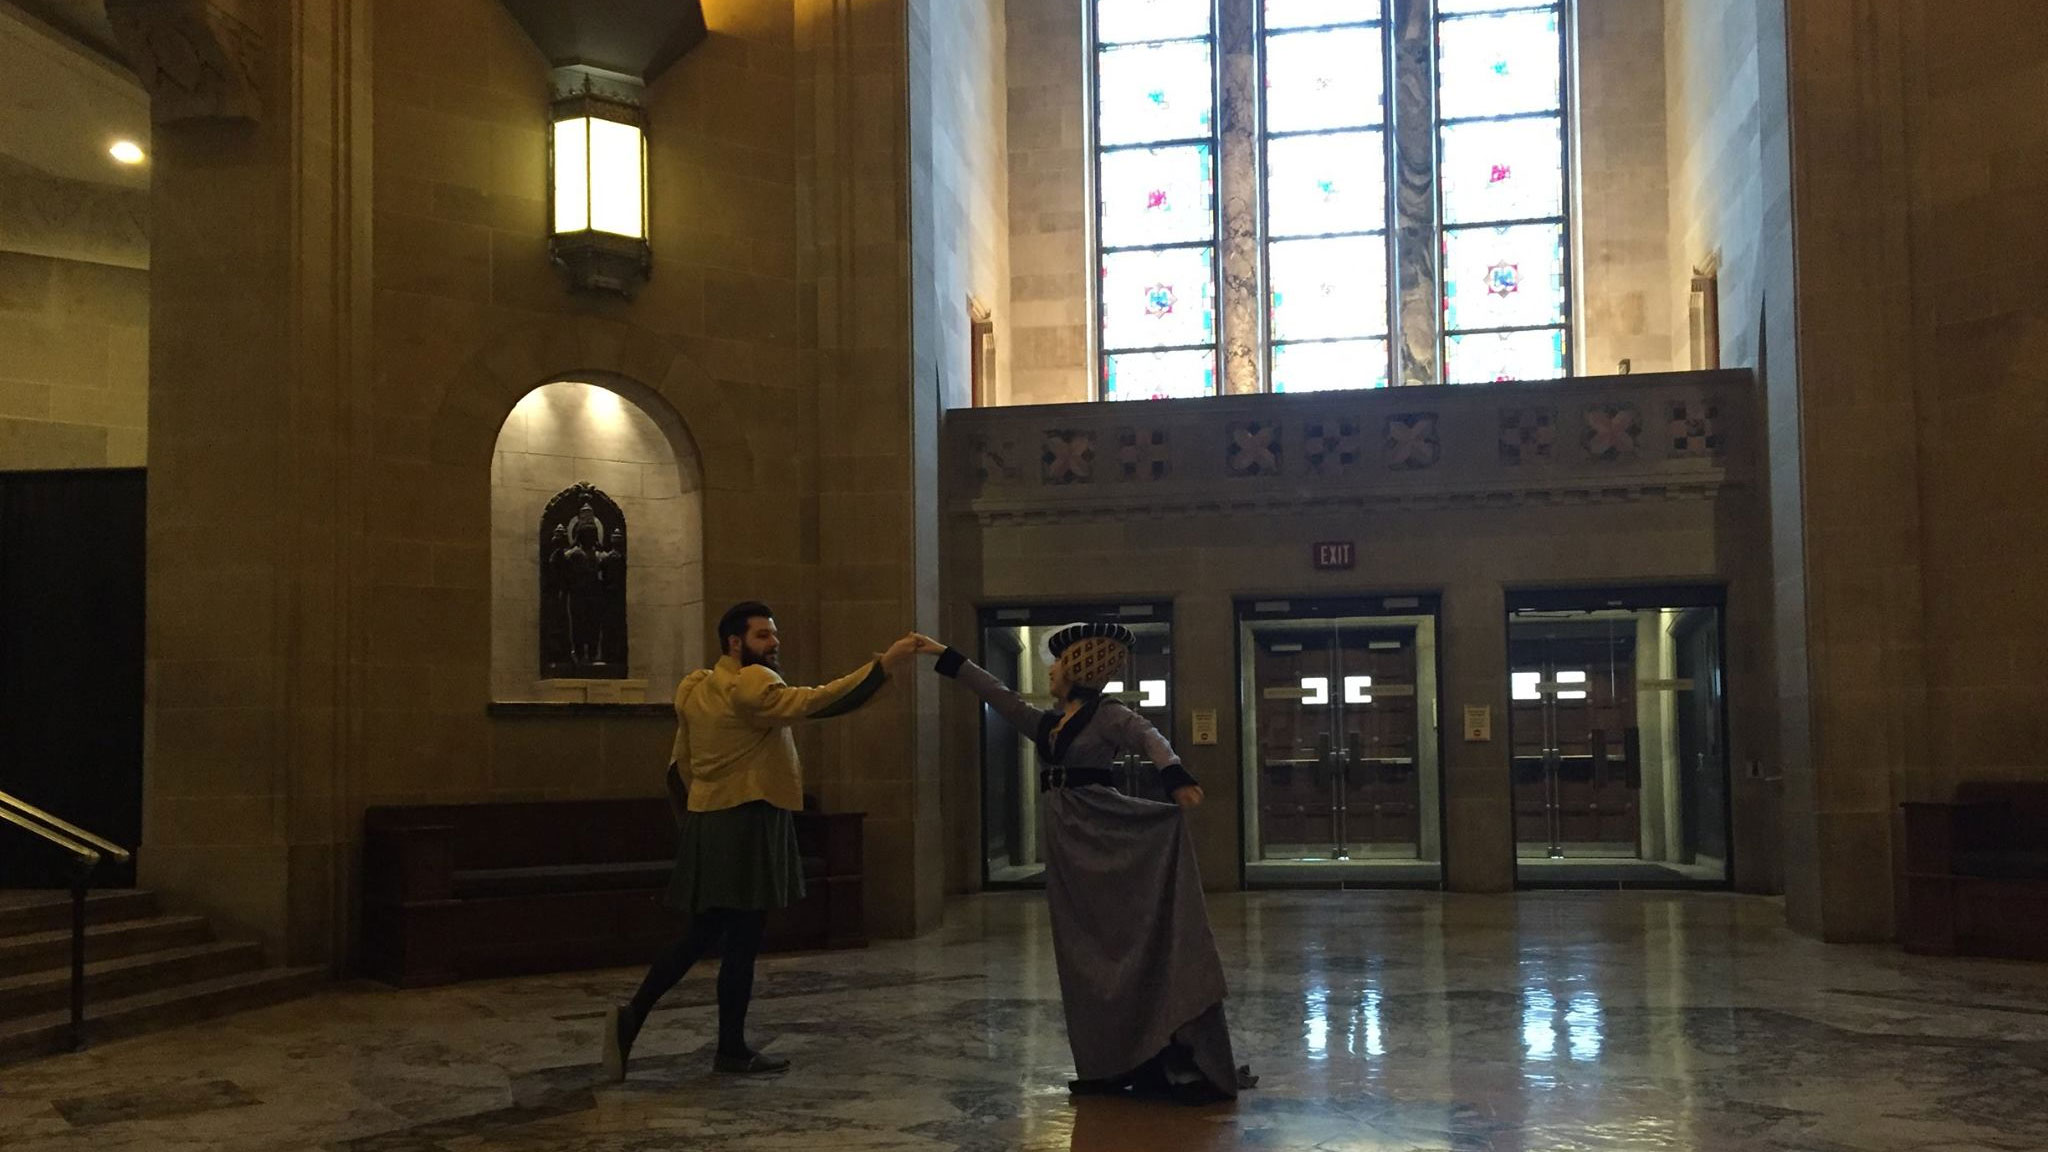 """The Royal Ontario Museum's """"Enchanted March Break"""" program is offering several activities including learning to dance like a knight or princess during Elizabethan times. Photo via Facebook/RoyalOntarioMuseum."""